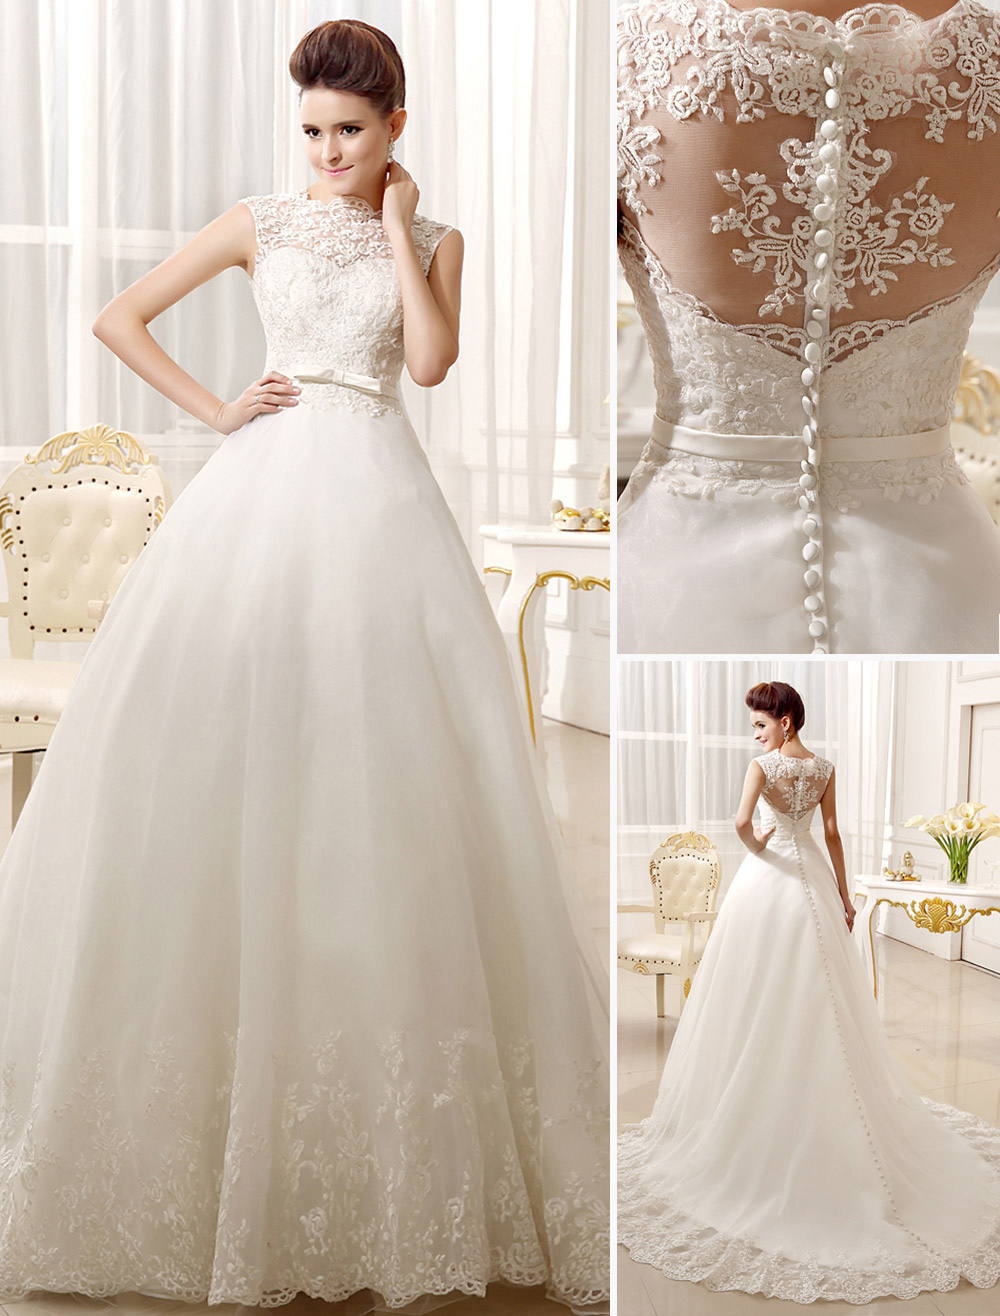 Wedding Dresses Lace Applique Bridal Dress Bow Sash Sweetheart Illusion Train Wedding Gown